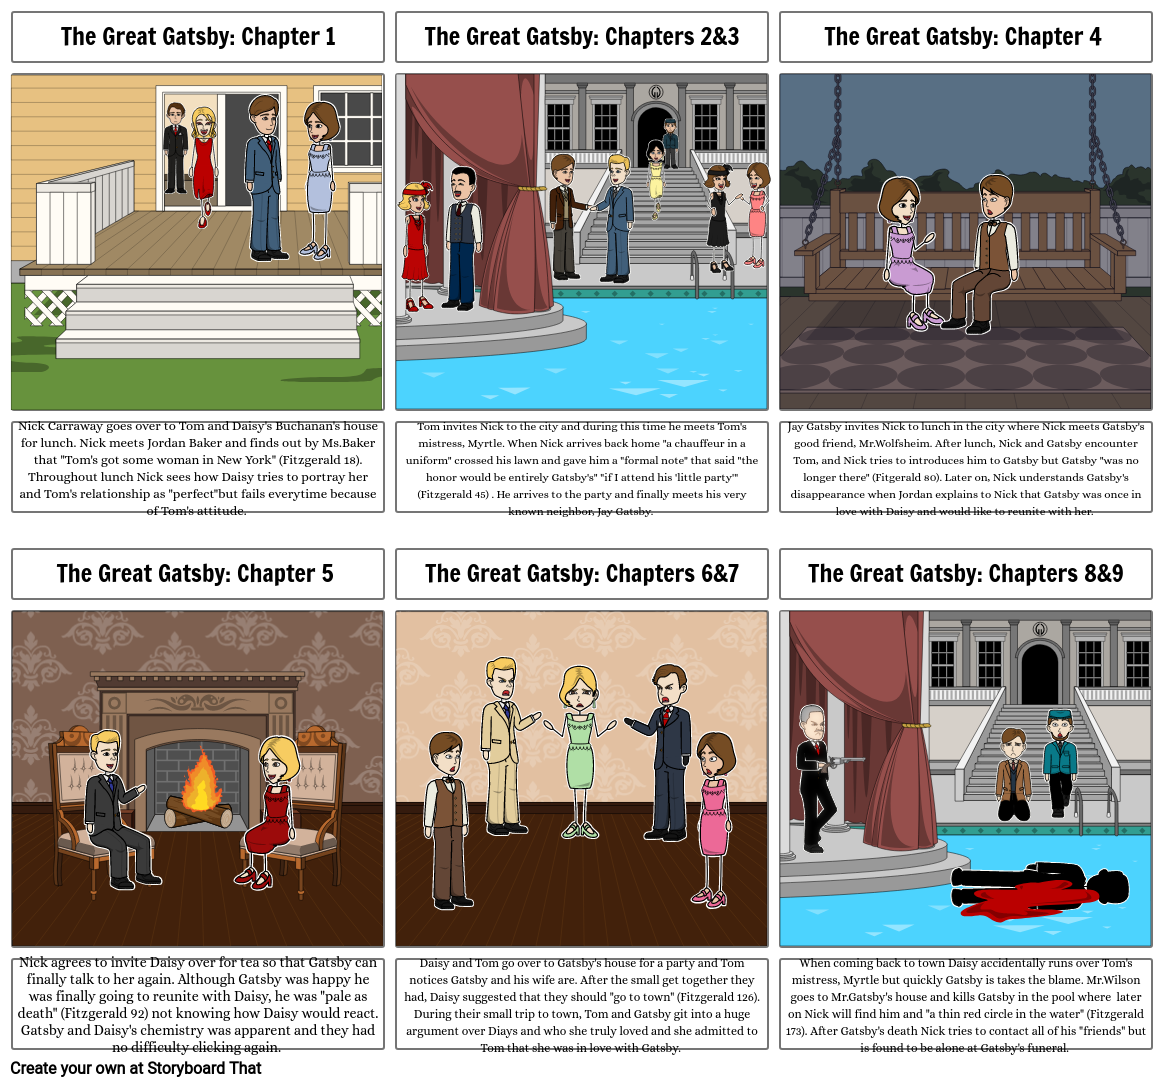 the great gatsby storyboard